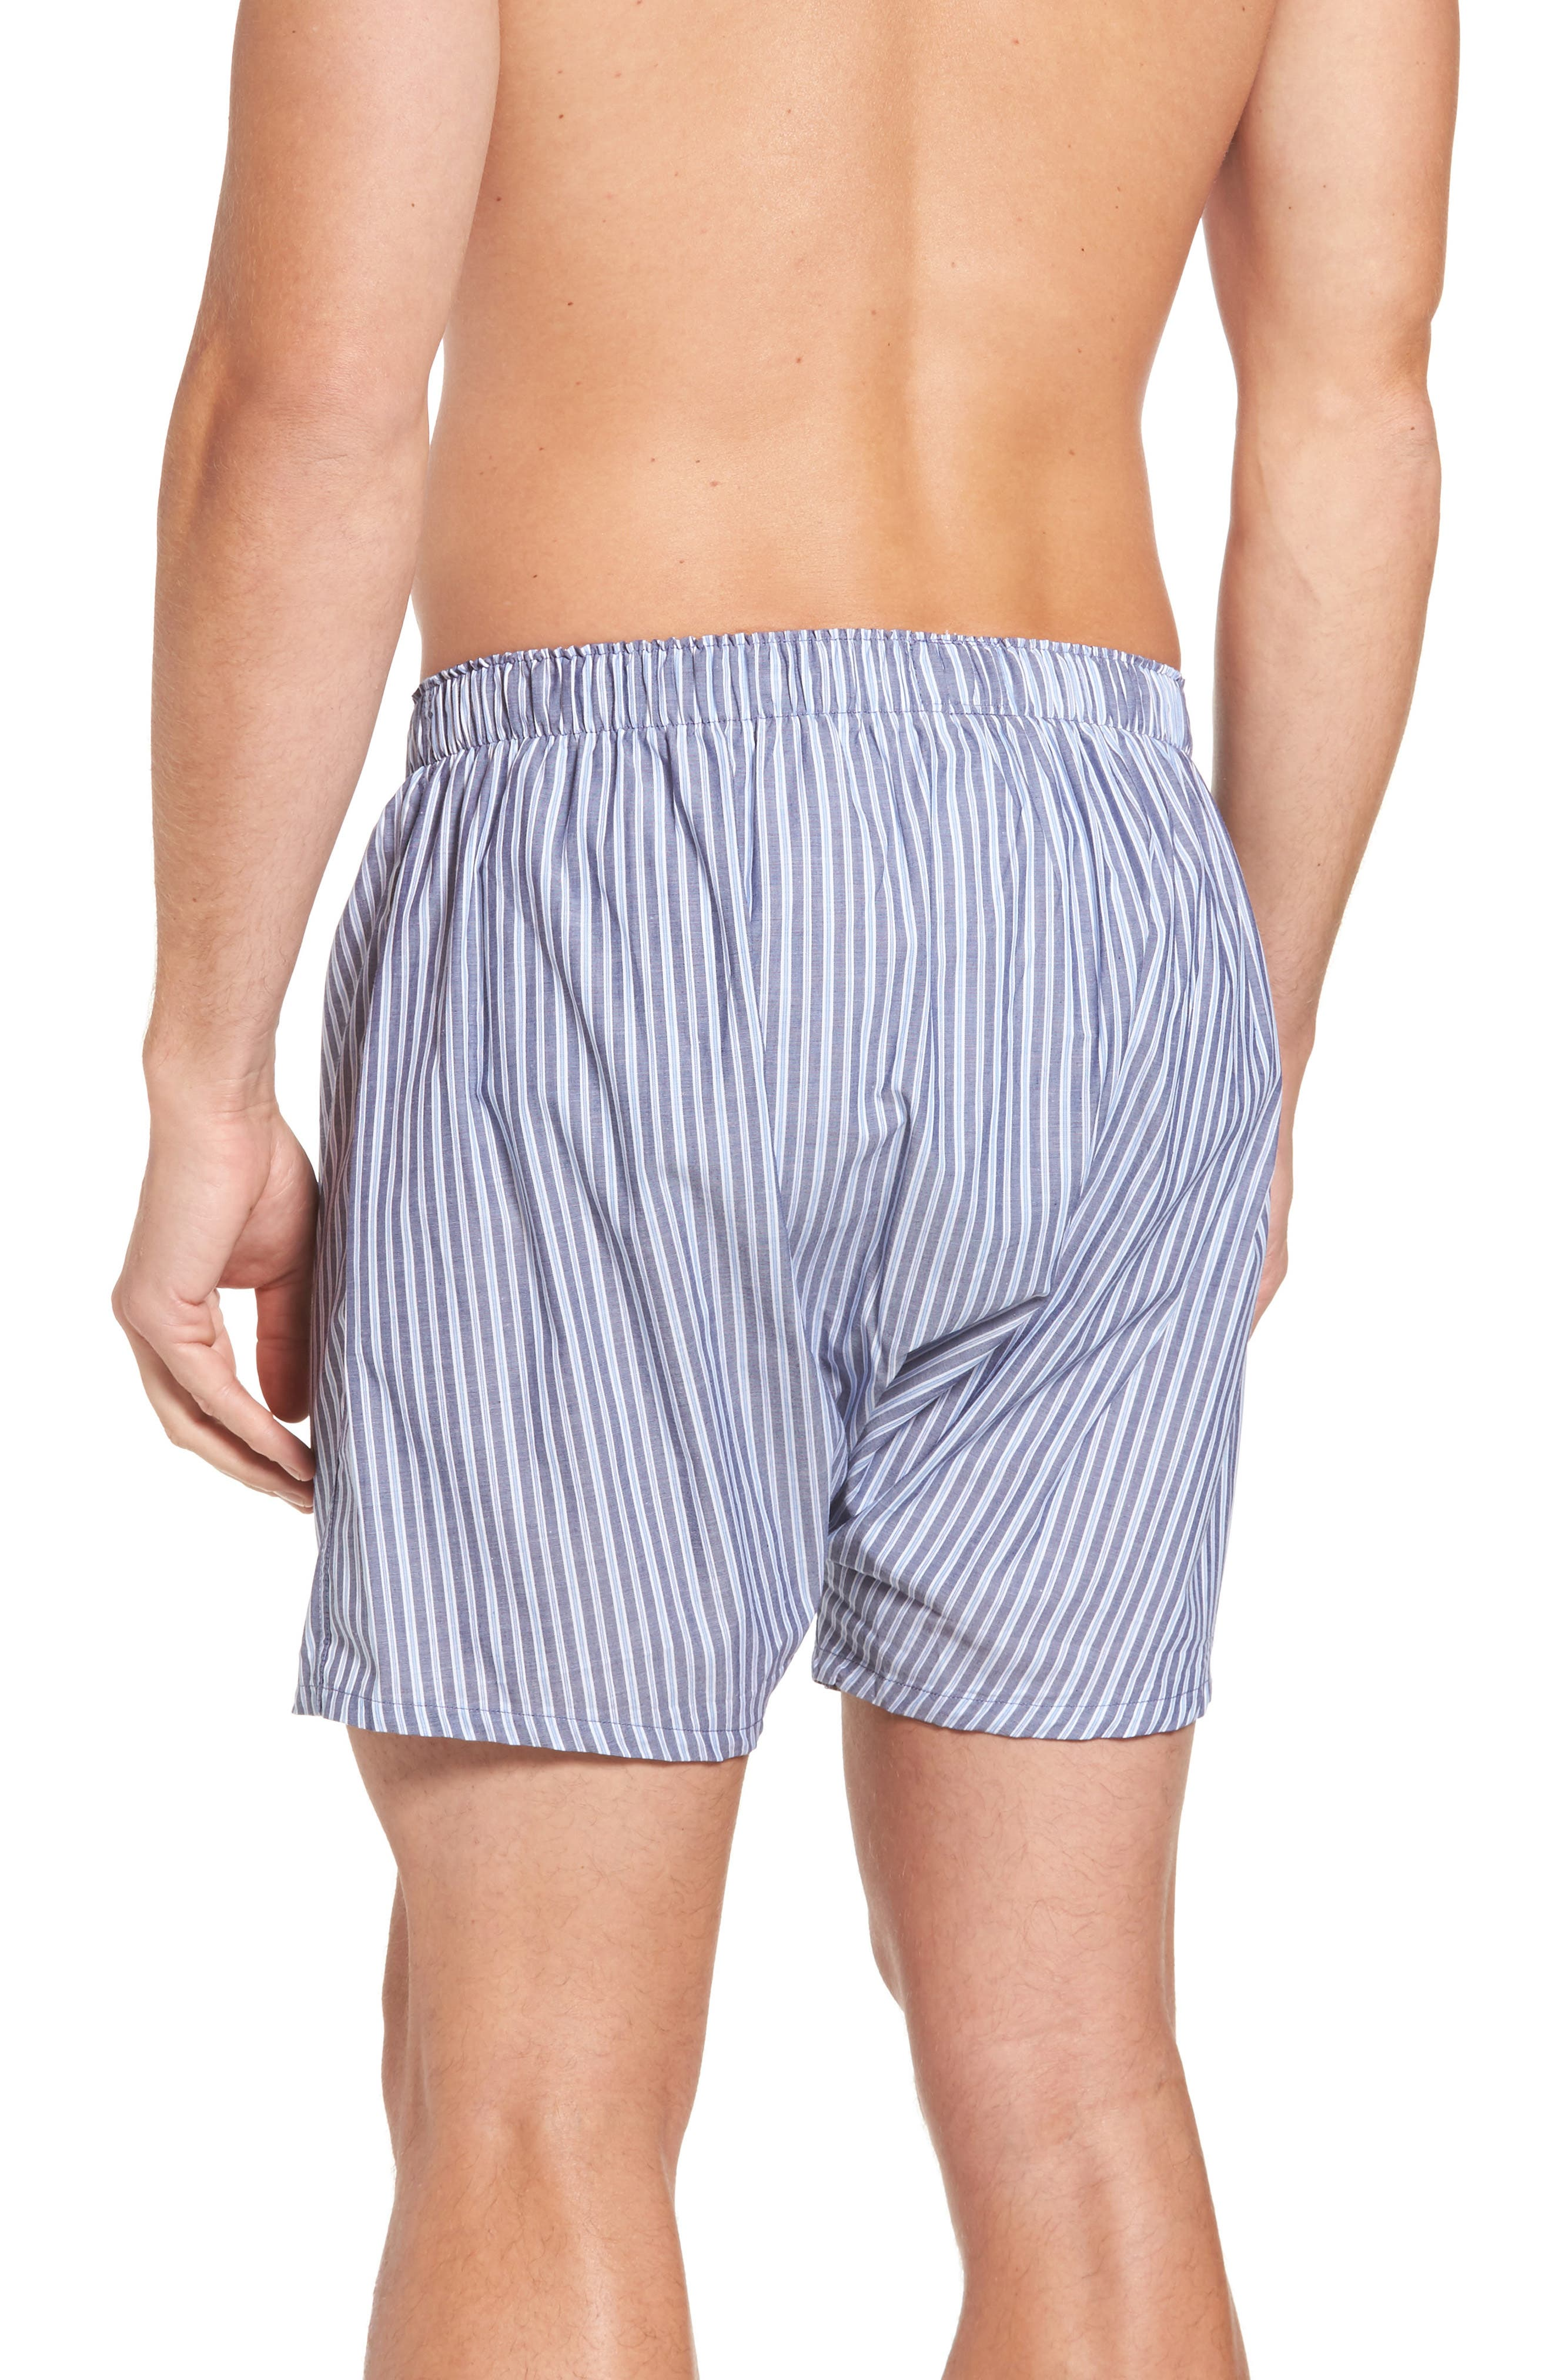 Alternate Image 3  - Polo Ralph Lauren Assorted 3-Pack Woven Cotton Boxers